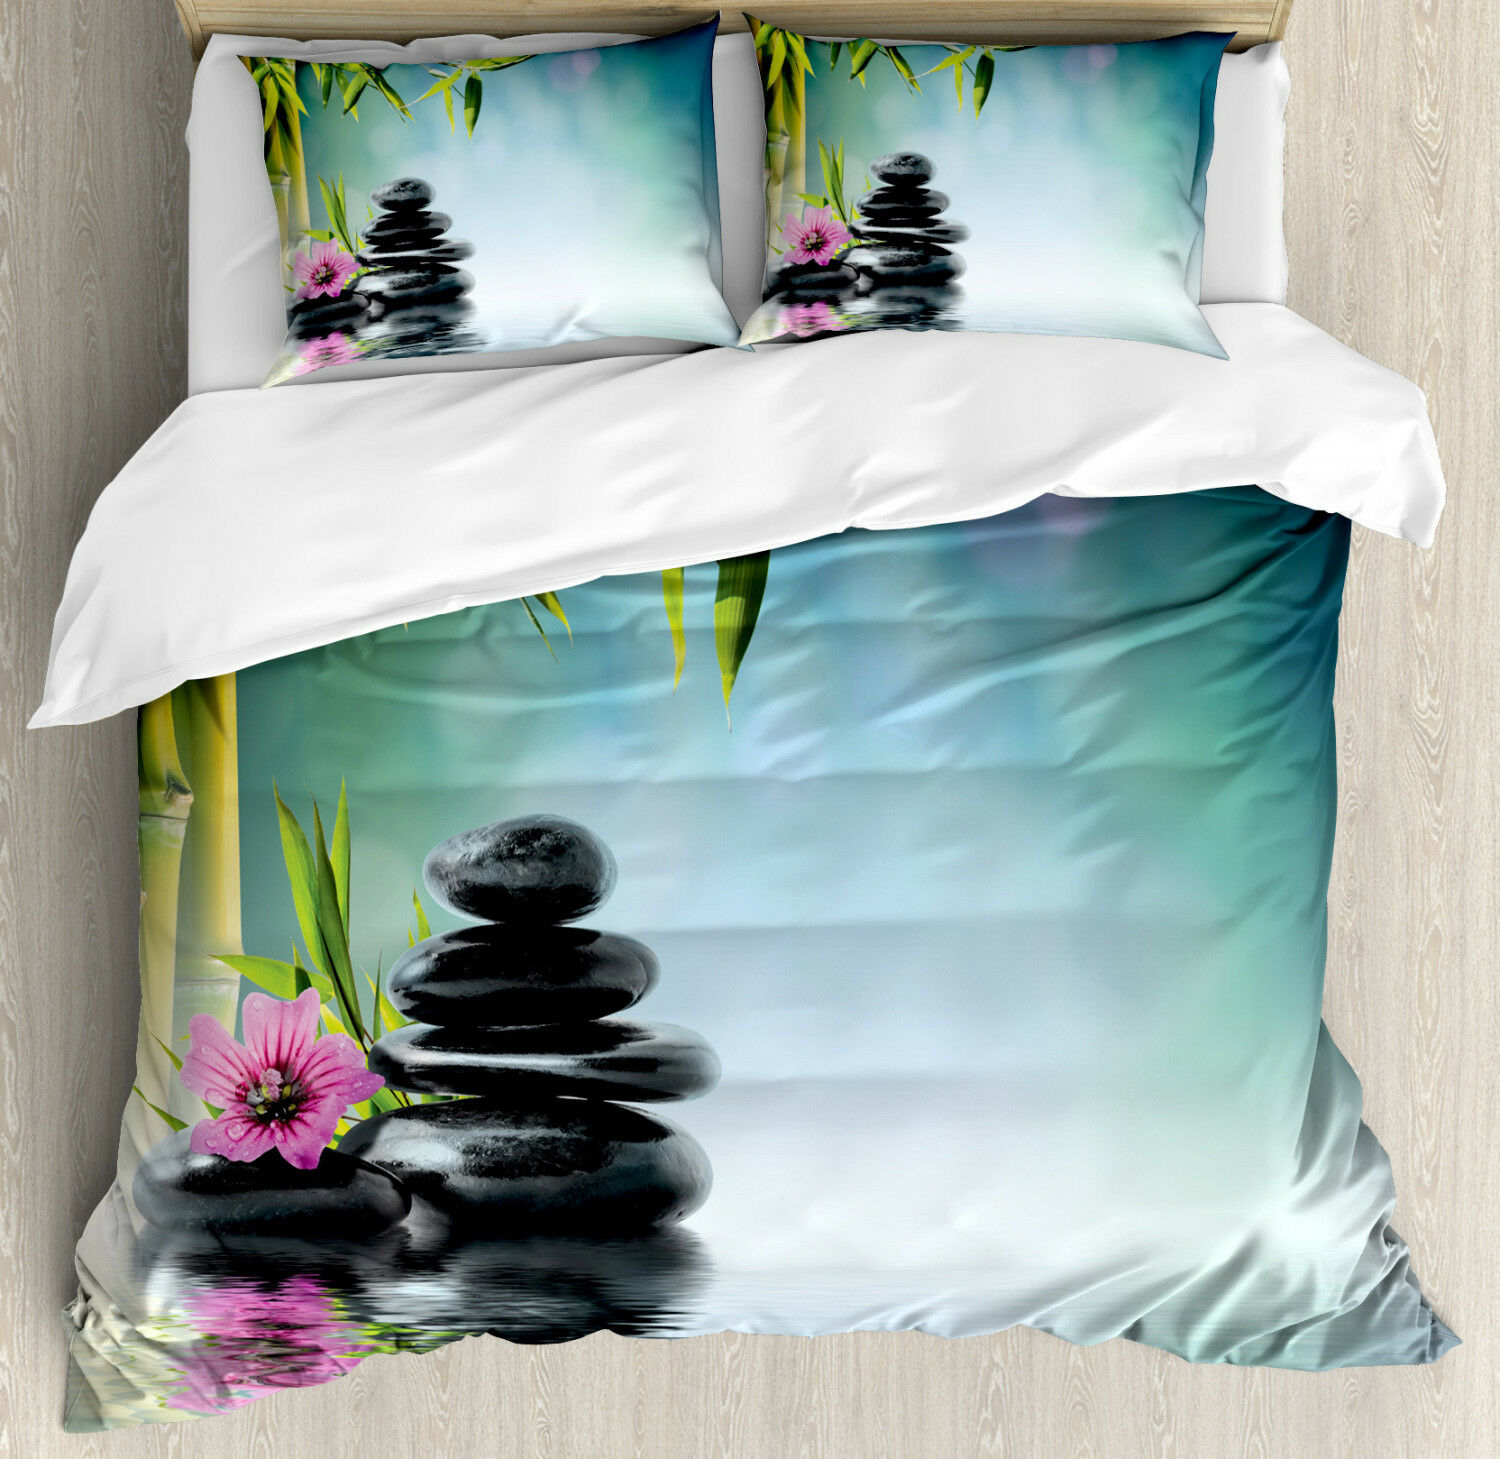 Spa Duvet Cover Set with Pillow Shams Hibiscus Bamboo on Water Print